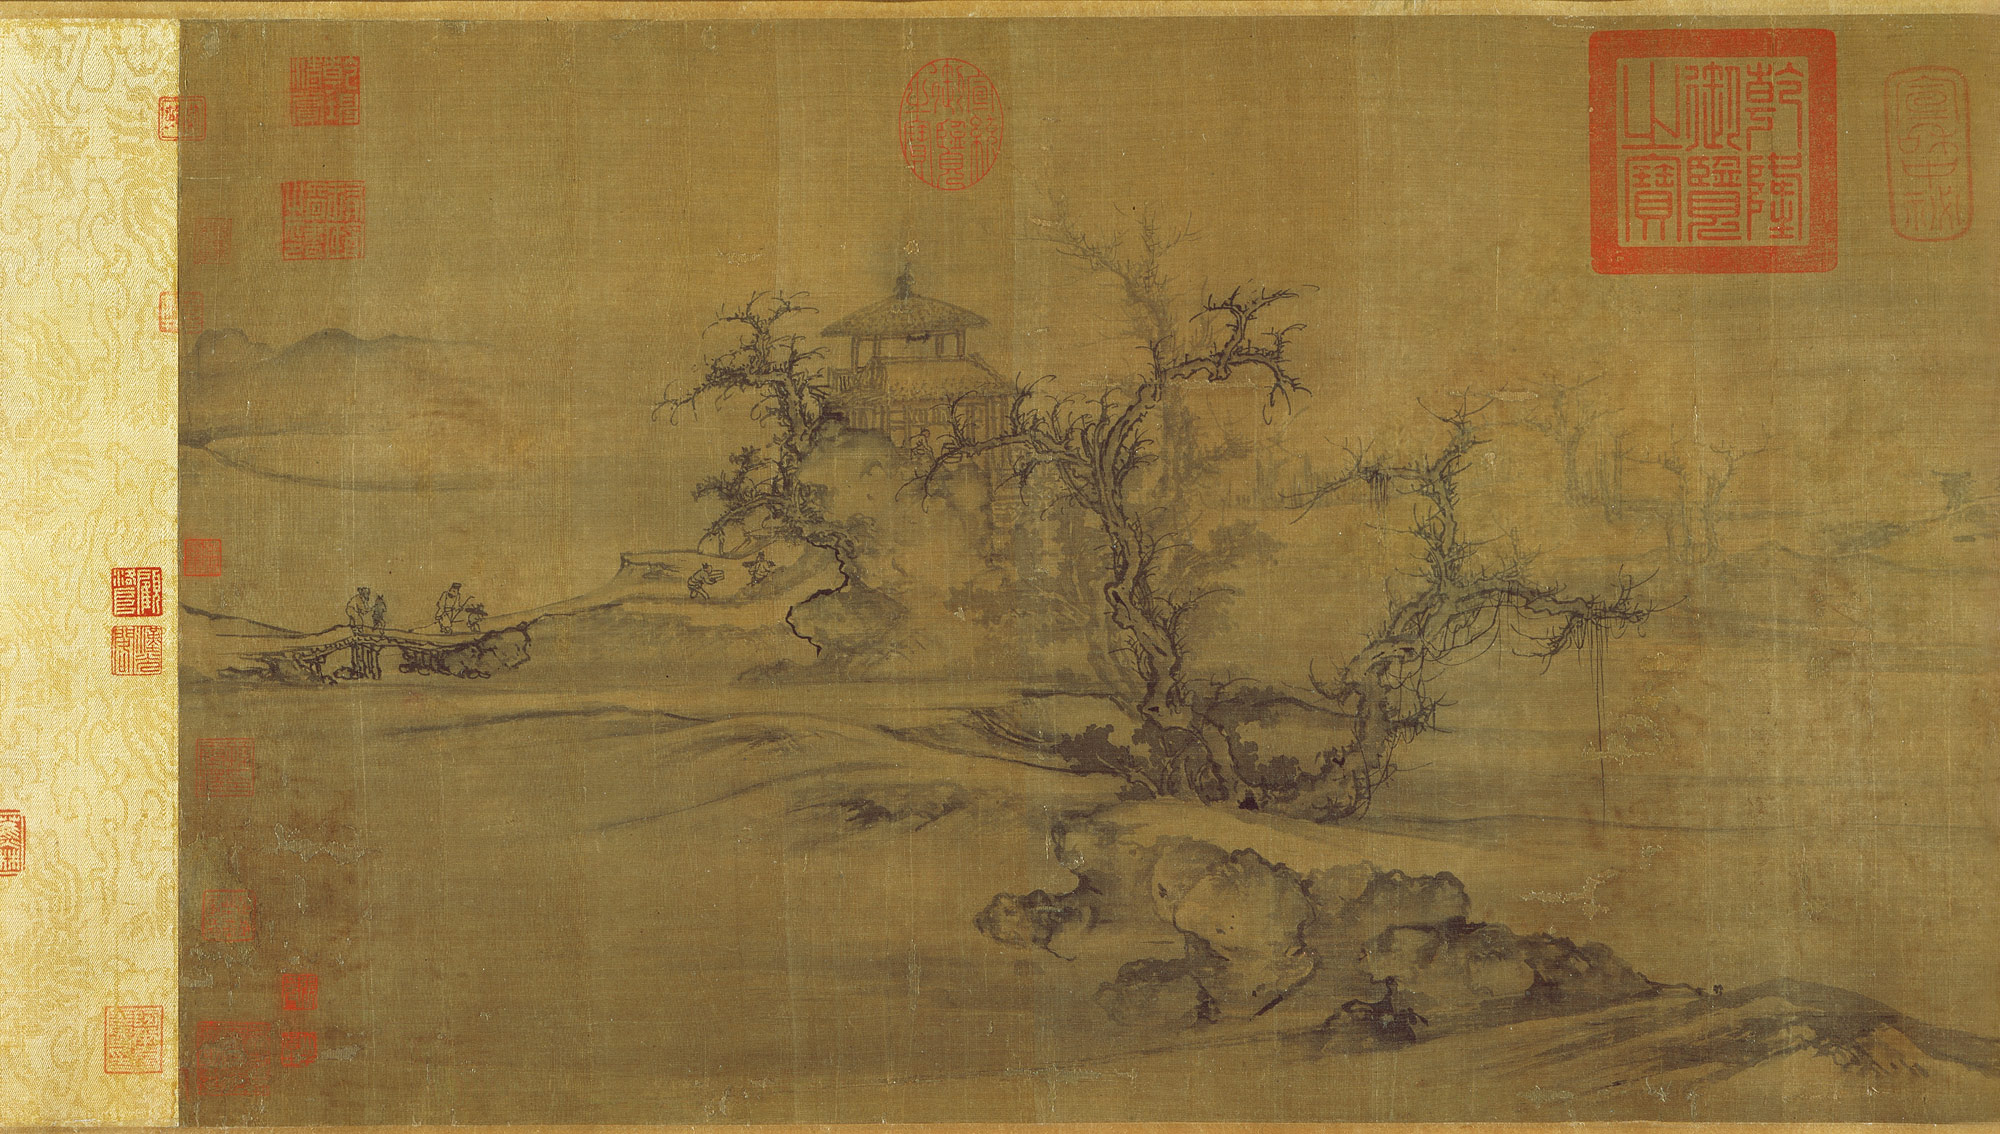 landscape painting in chinese art essay heilbrunn timeline of old trees level distance